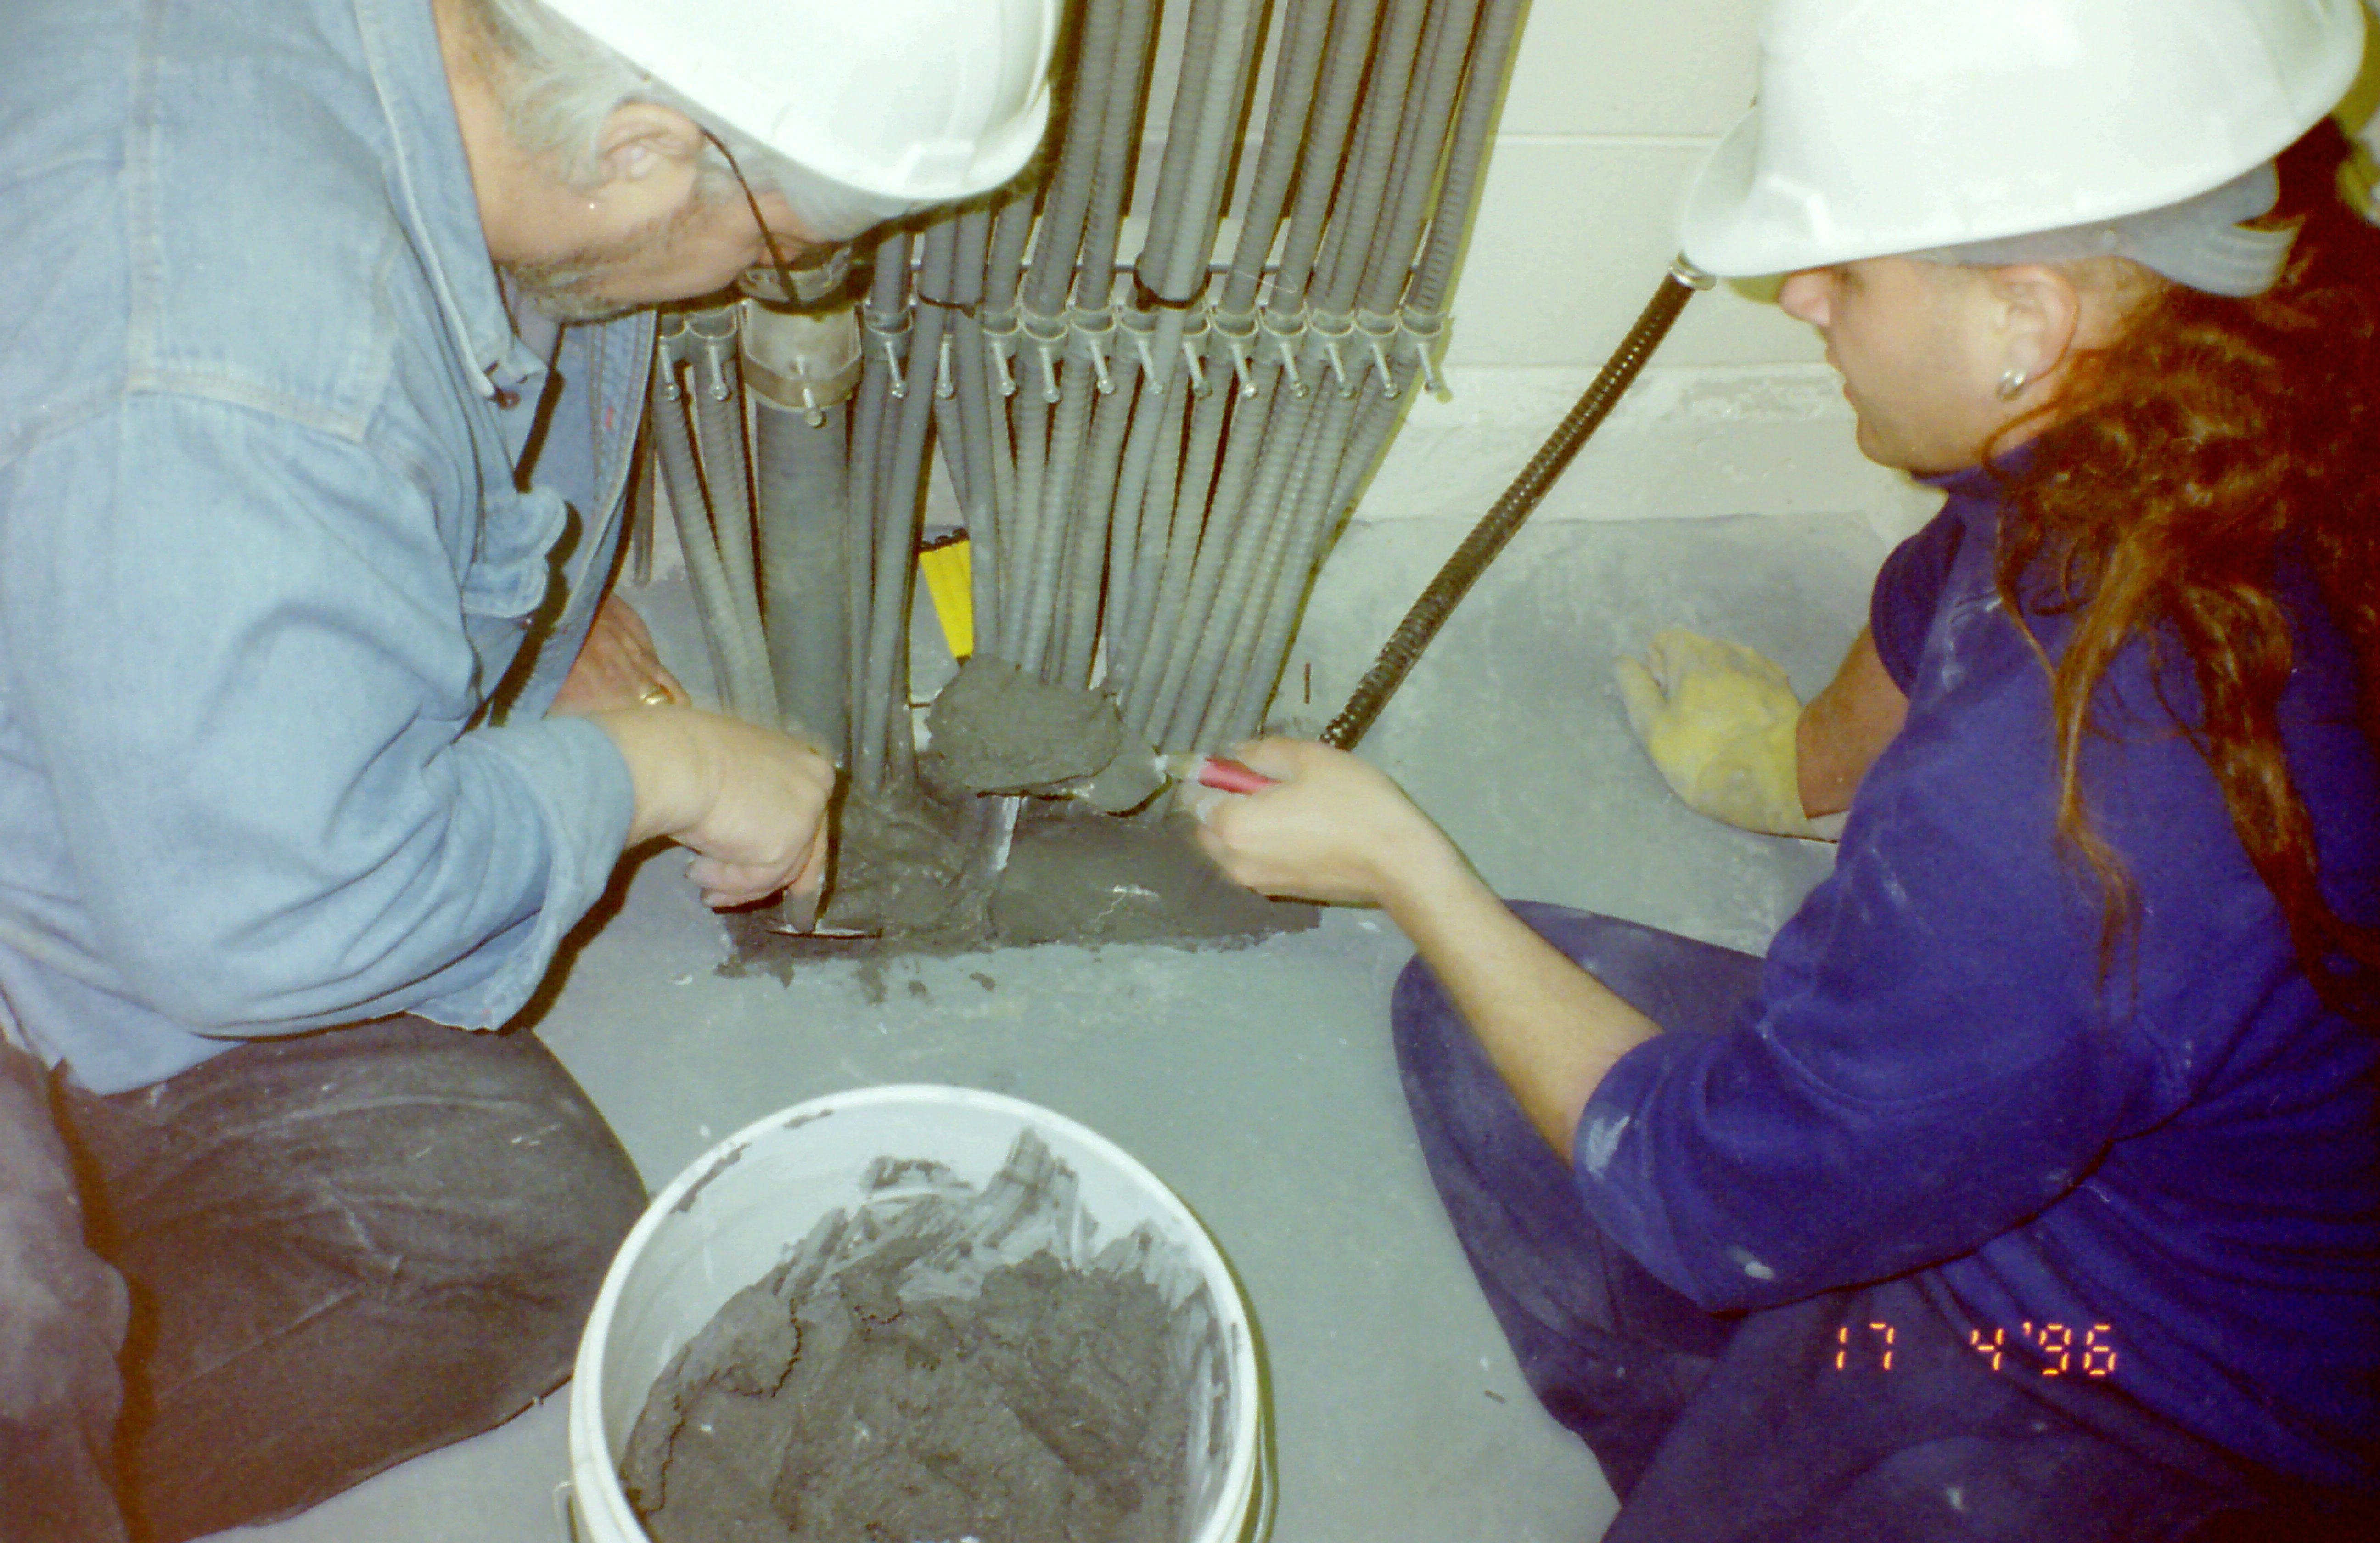 3m Fire Barrier Mortar : File oldroyd and son installing m fire barrier mortar st